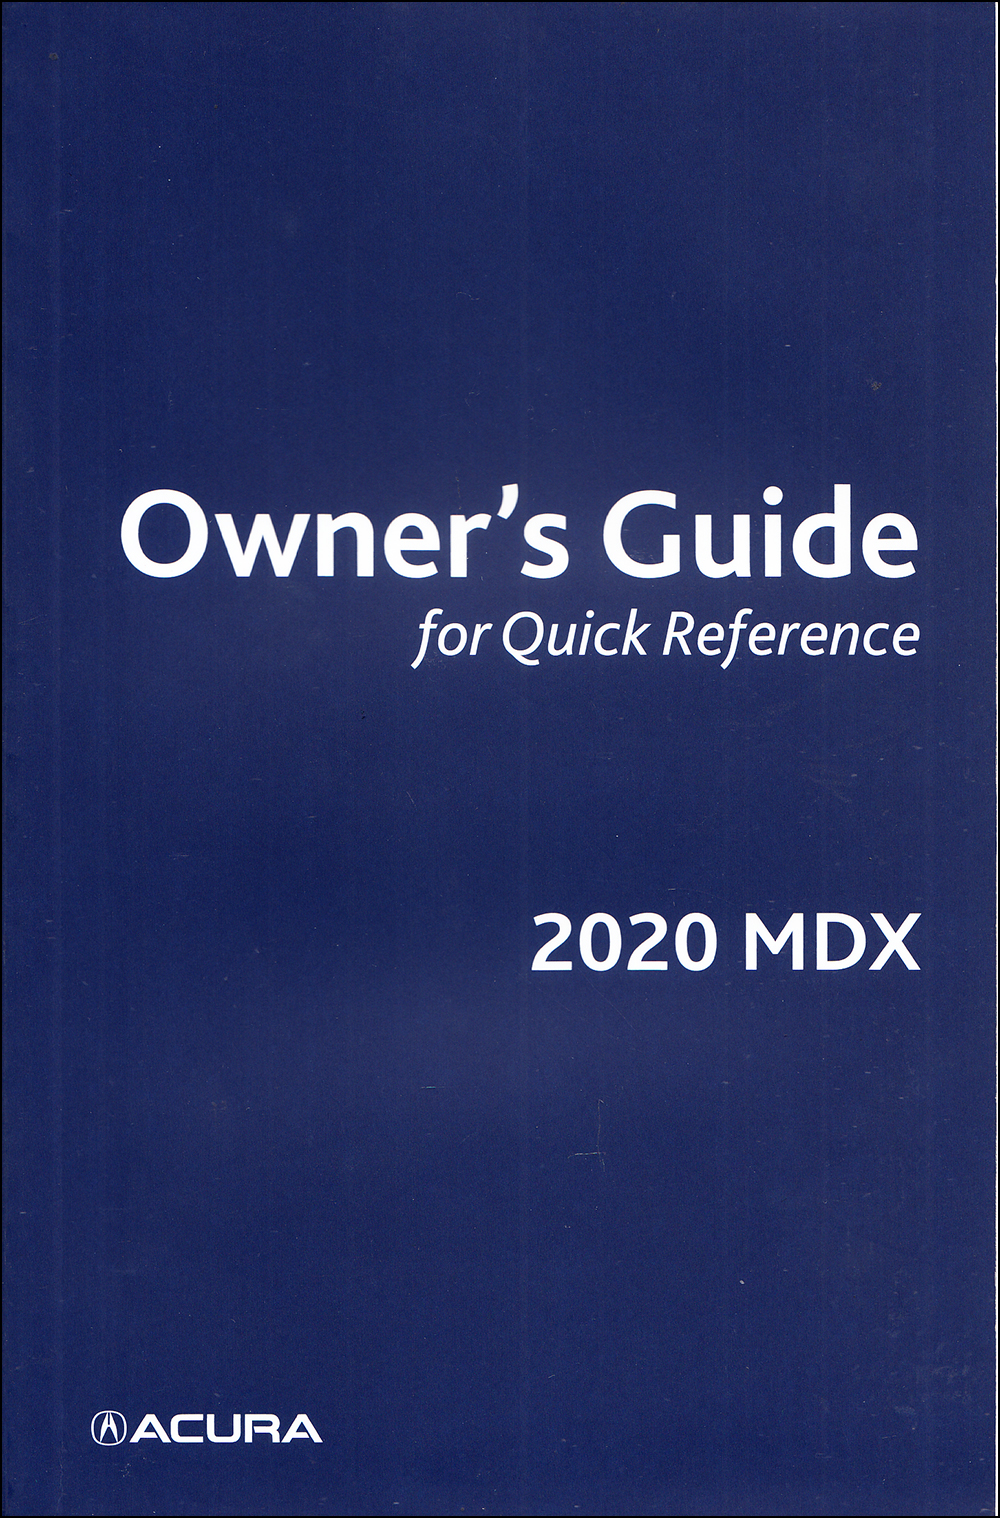 2020 Acura MDX Owner's Guide Manual Original Gas